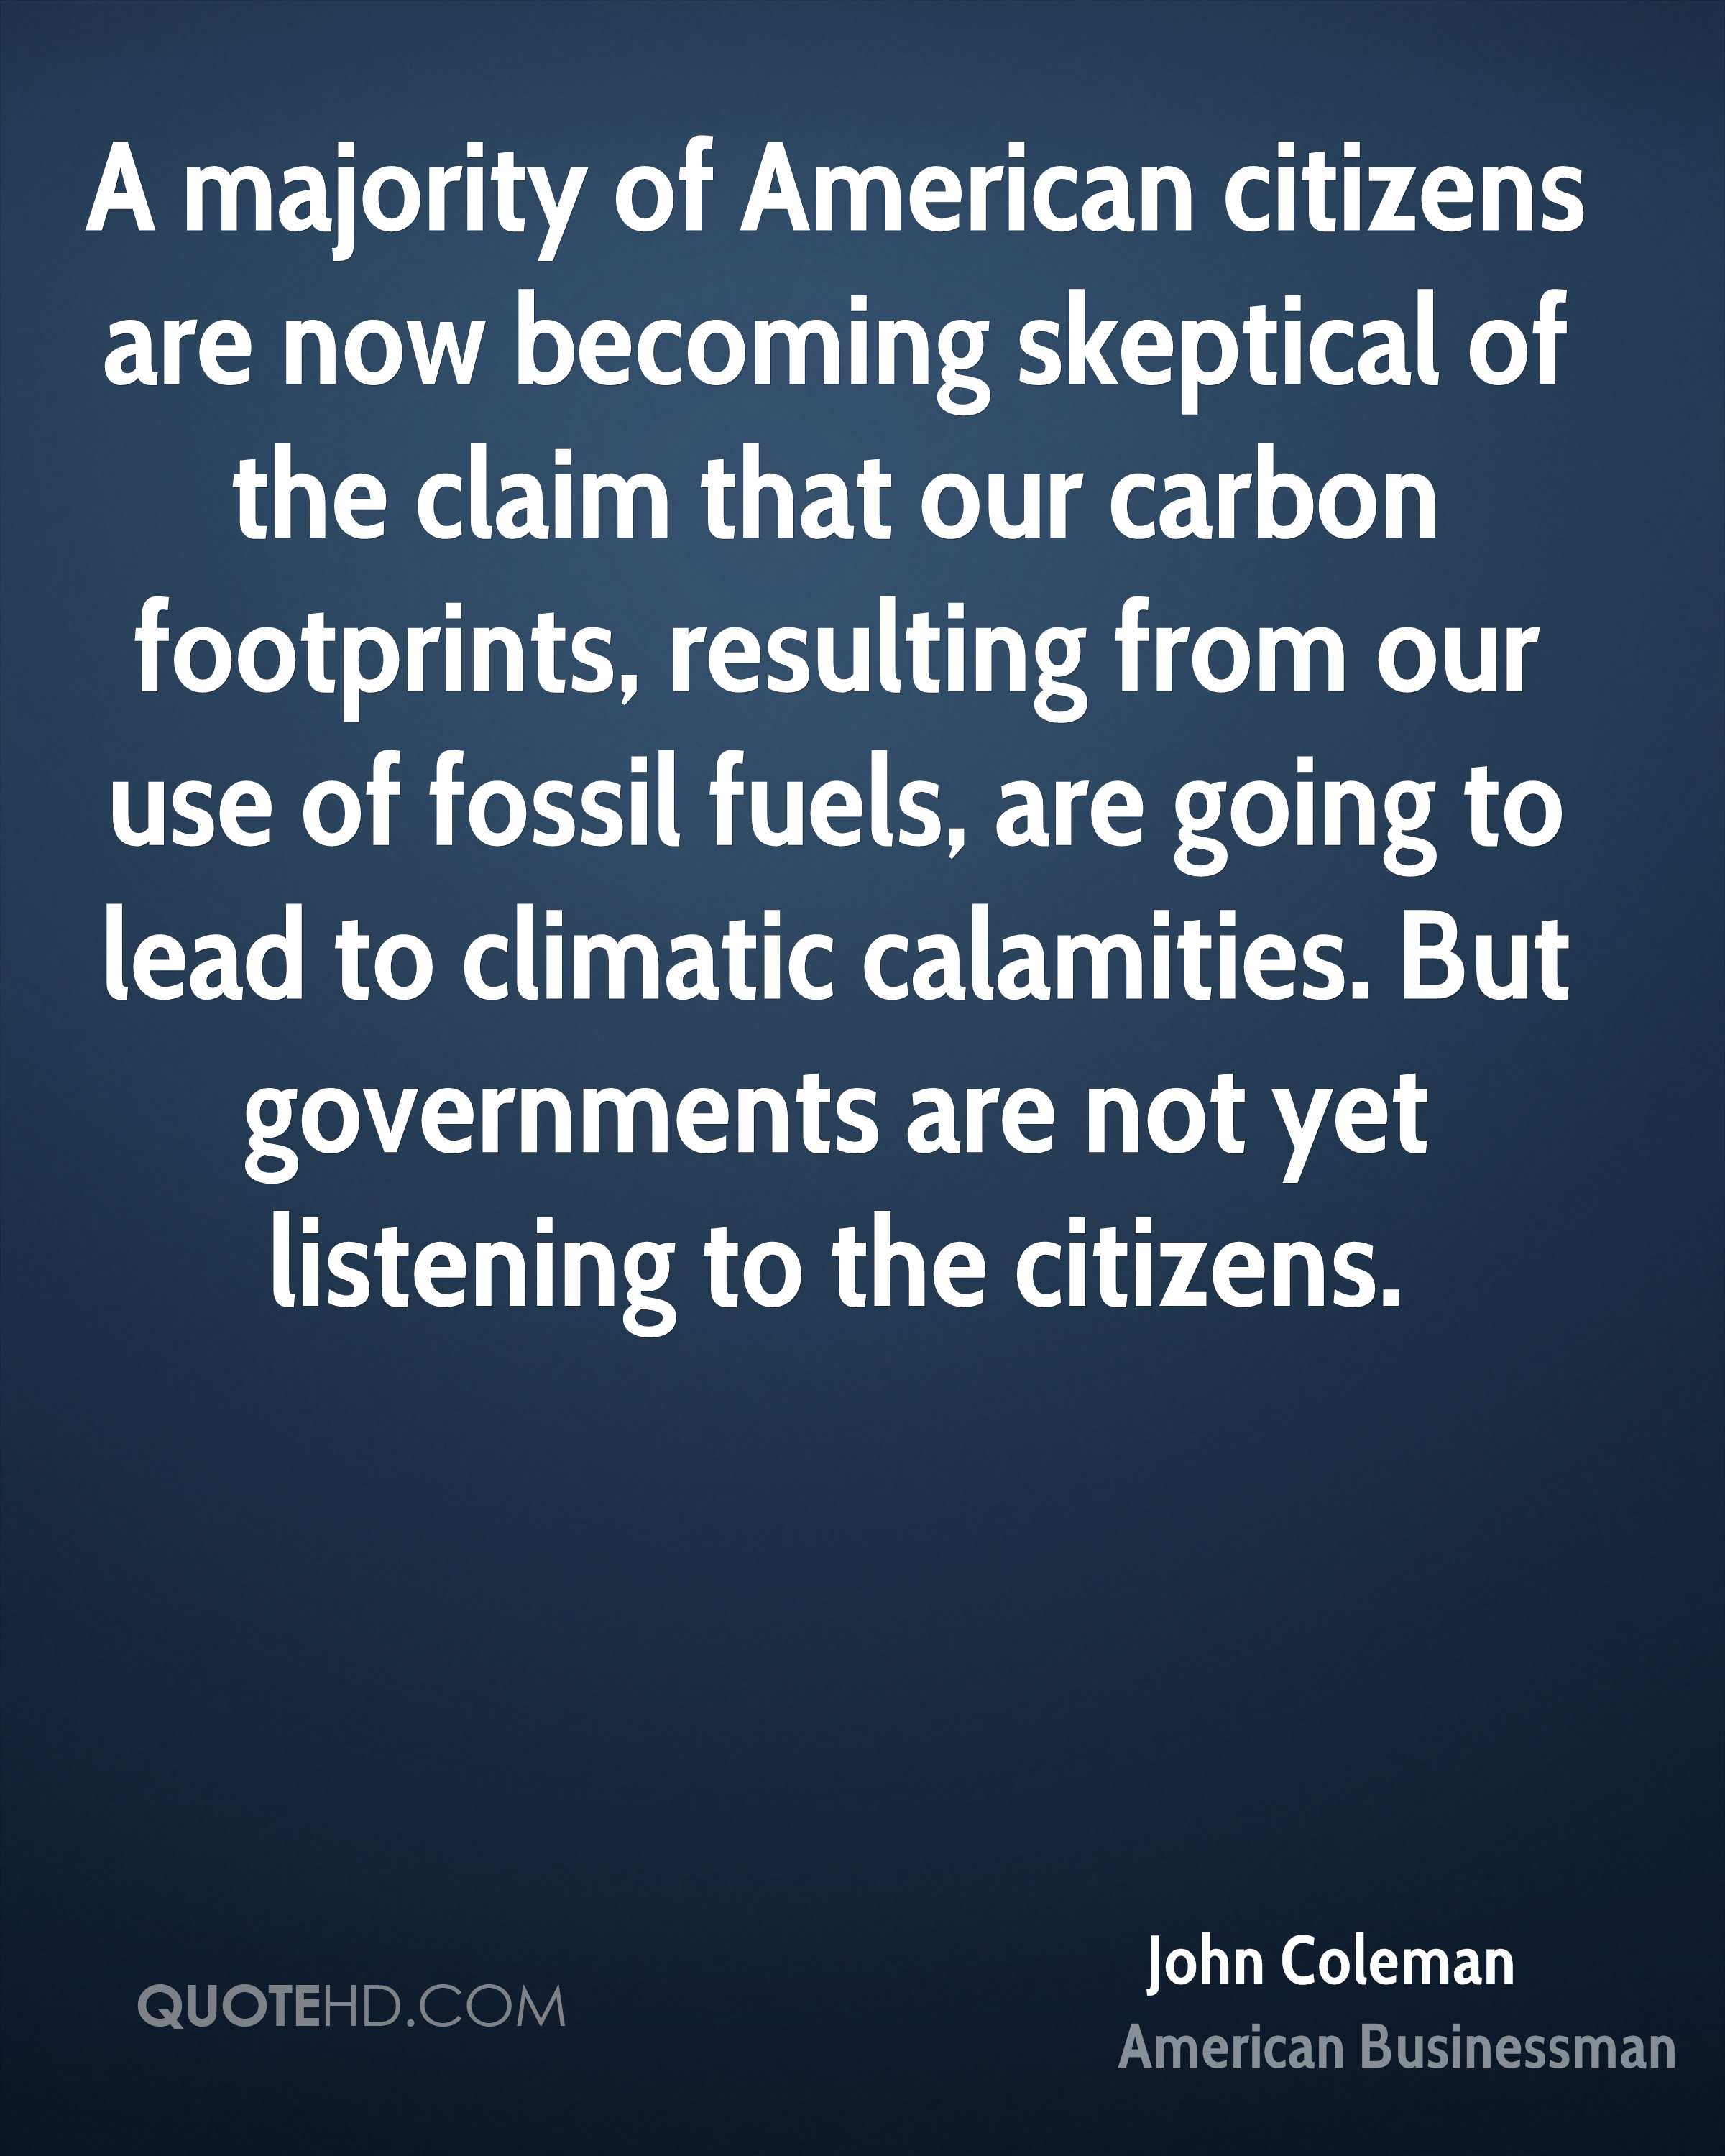 A majority of American citizens are now becoming skeptical of the claim that our carbon footprints, resulting from our use of fossil fuels, are going to lead to climatic calamities. But governments are not yet listening to the citizens.